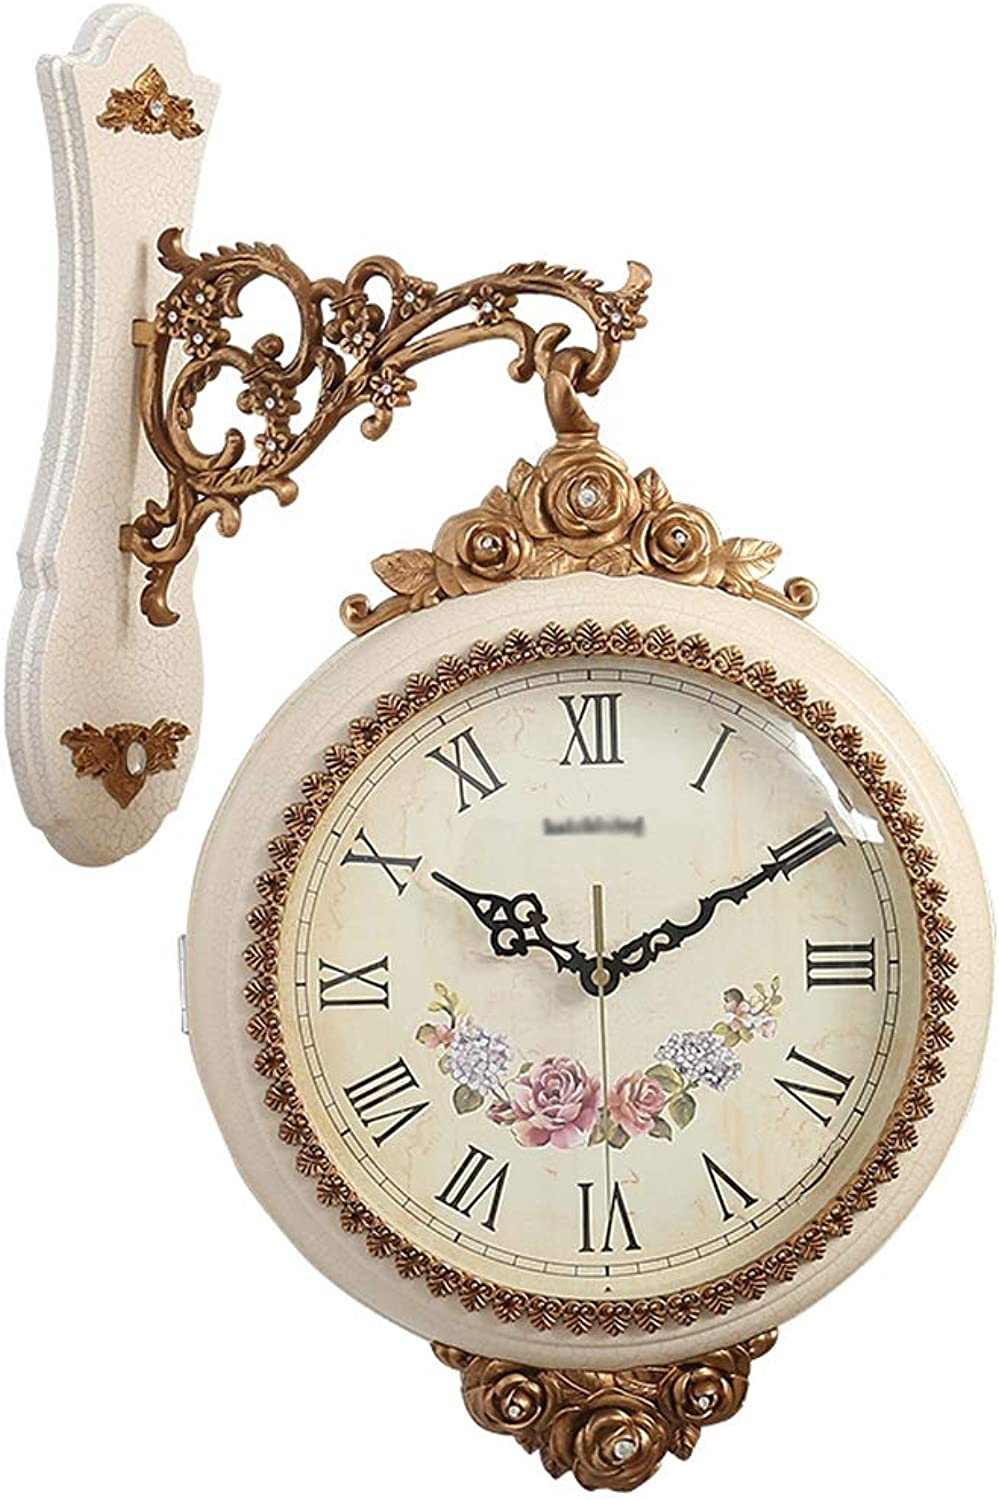 YONGMEI Wall Clock - Clock Creative Double-Sided Wall Clock Fashion Craft Clock Restaurant Living Room Electronic Clock Silent Quartz Clock (color   Beige, Size   56  37cm)